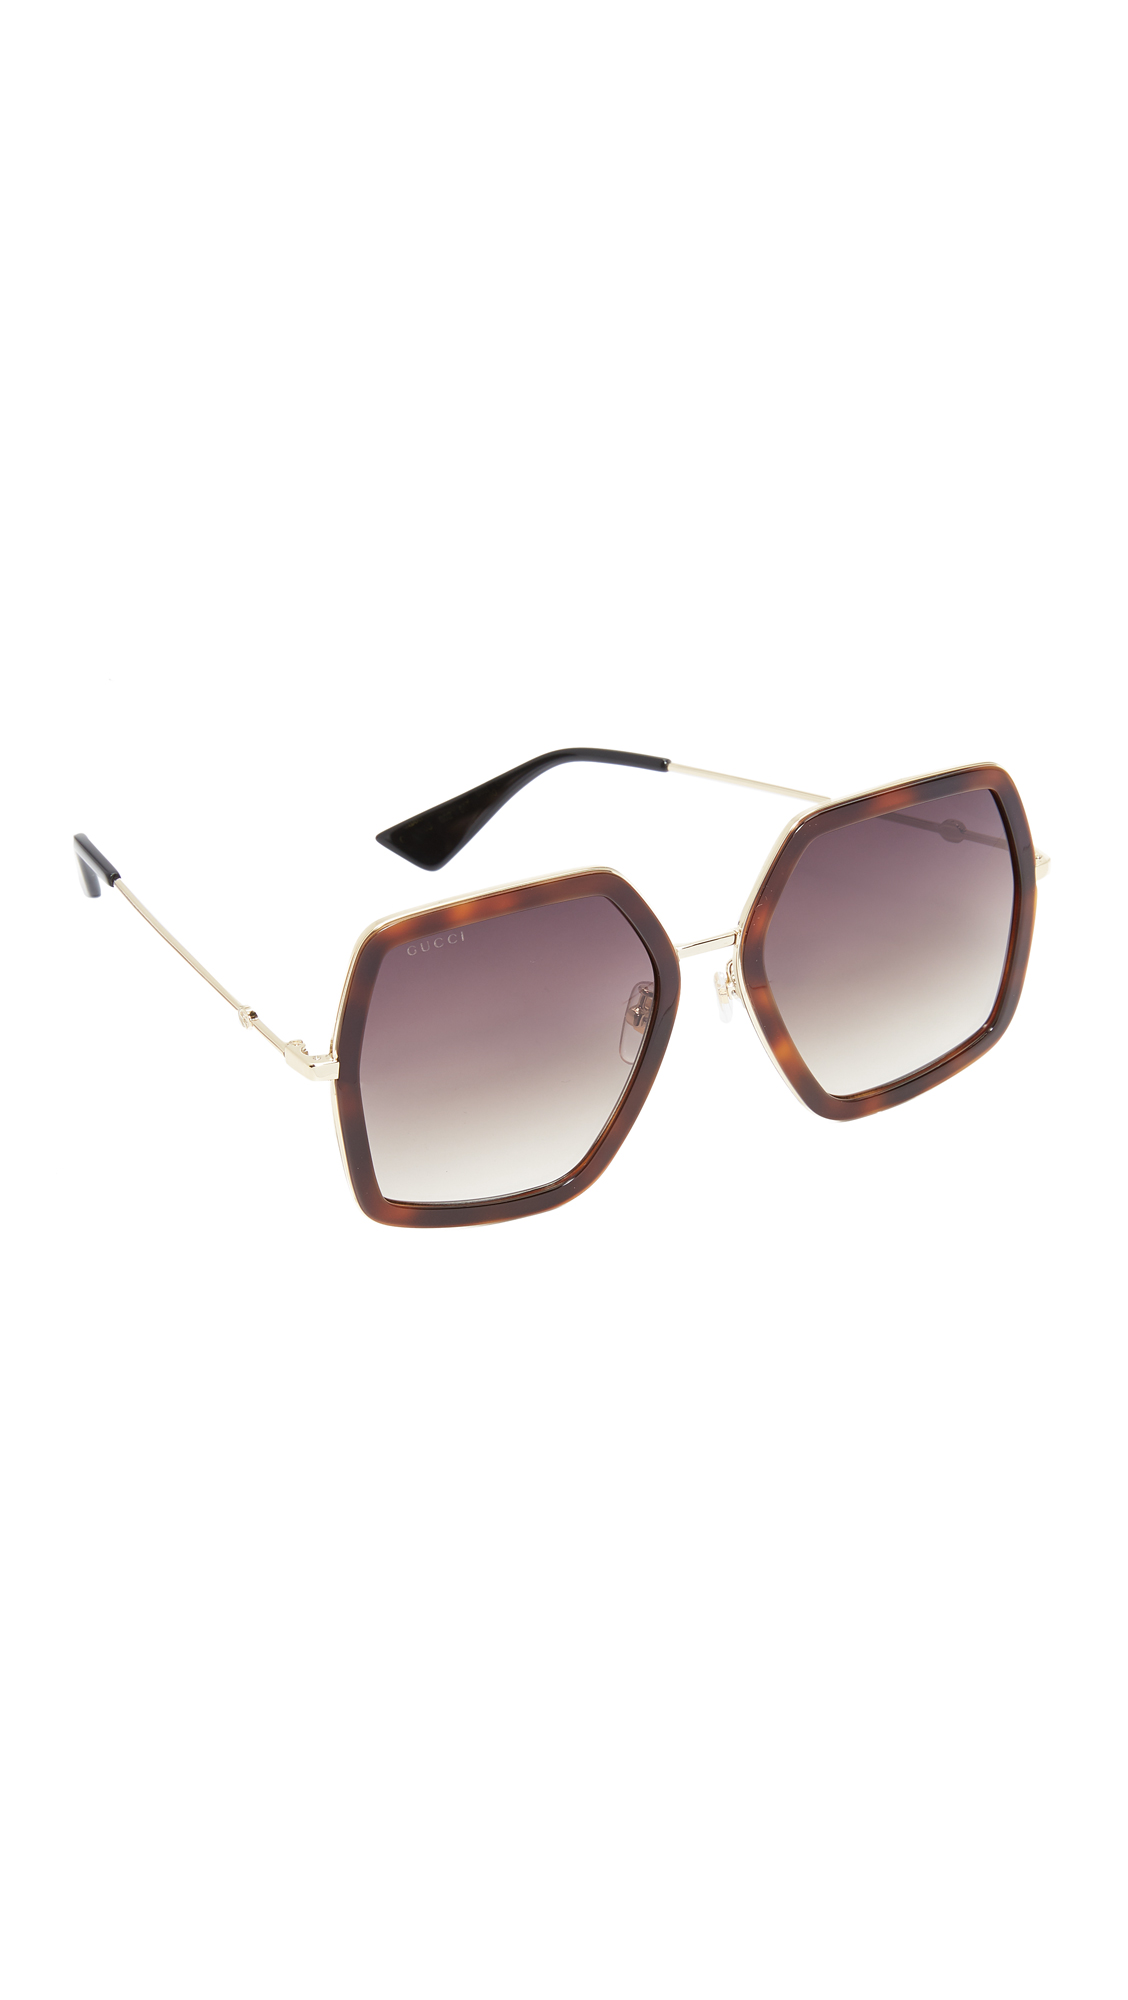 Gucci Urban Web Block Sunglasses - Havana/Brown